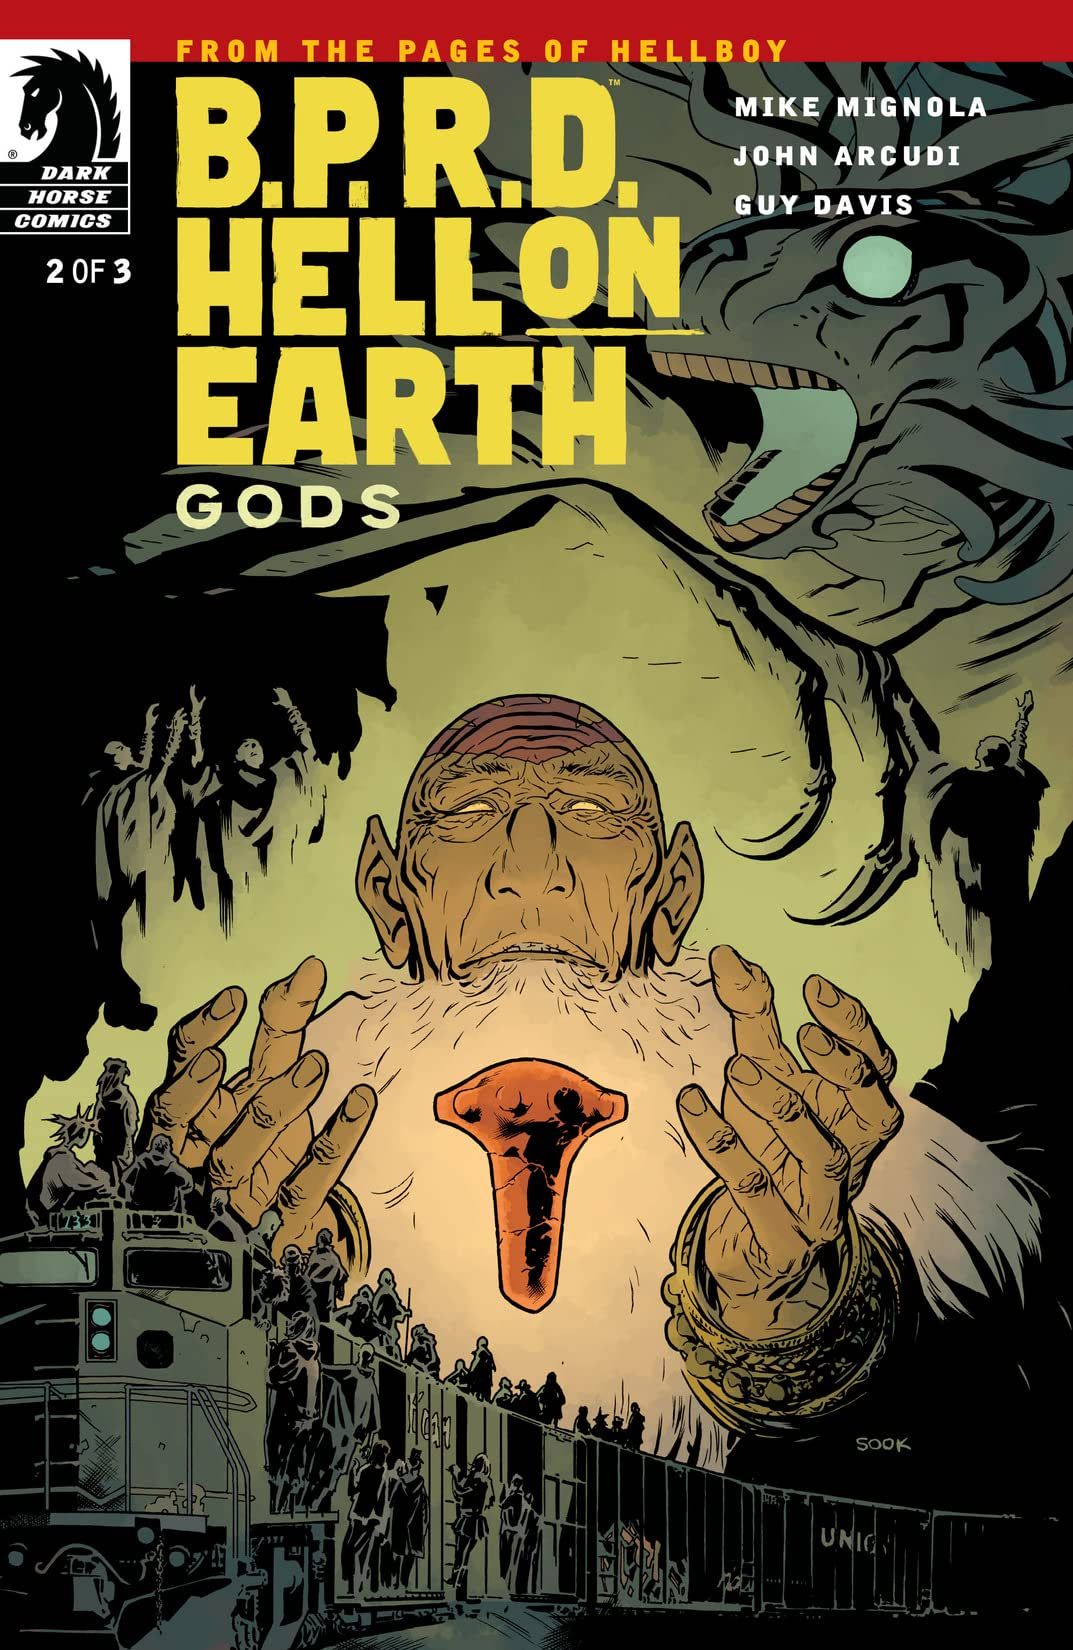 B.P.R.D. Hell on Earth: Gods #2